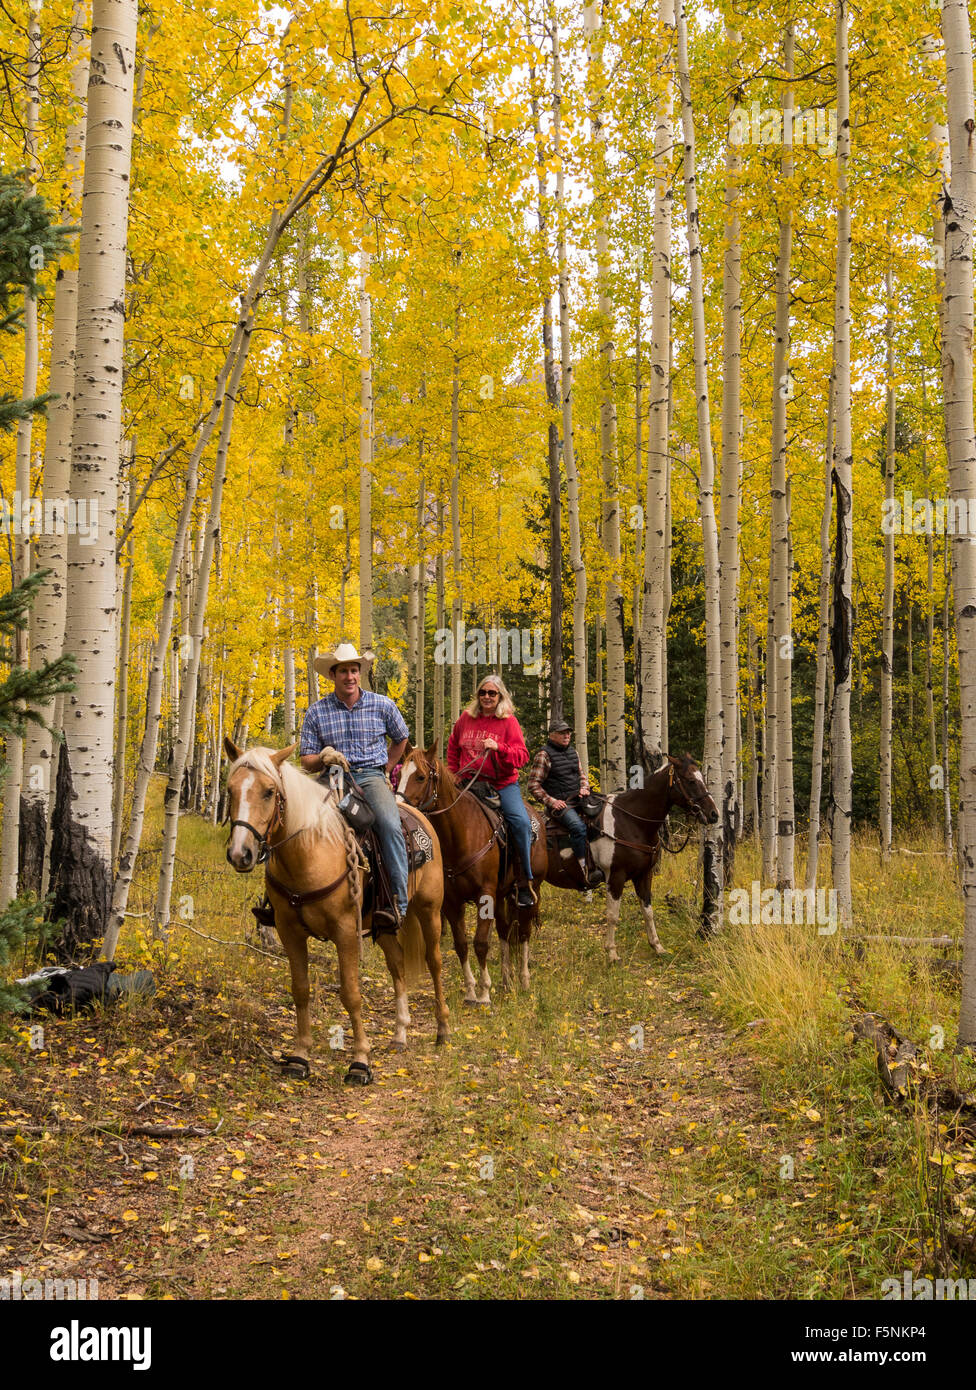 Ranch Colorado Stock Photos & Ranch Colorado Stock Images - Alamy